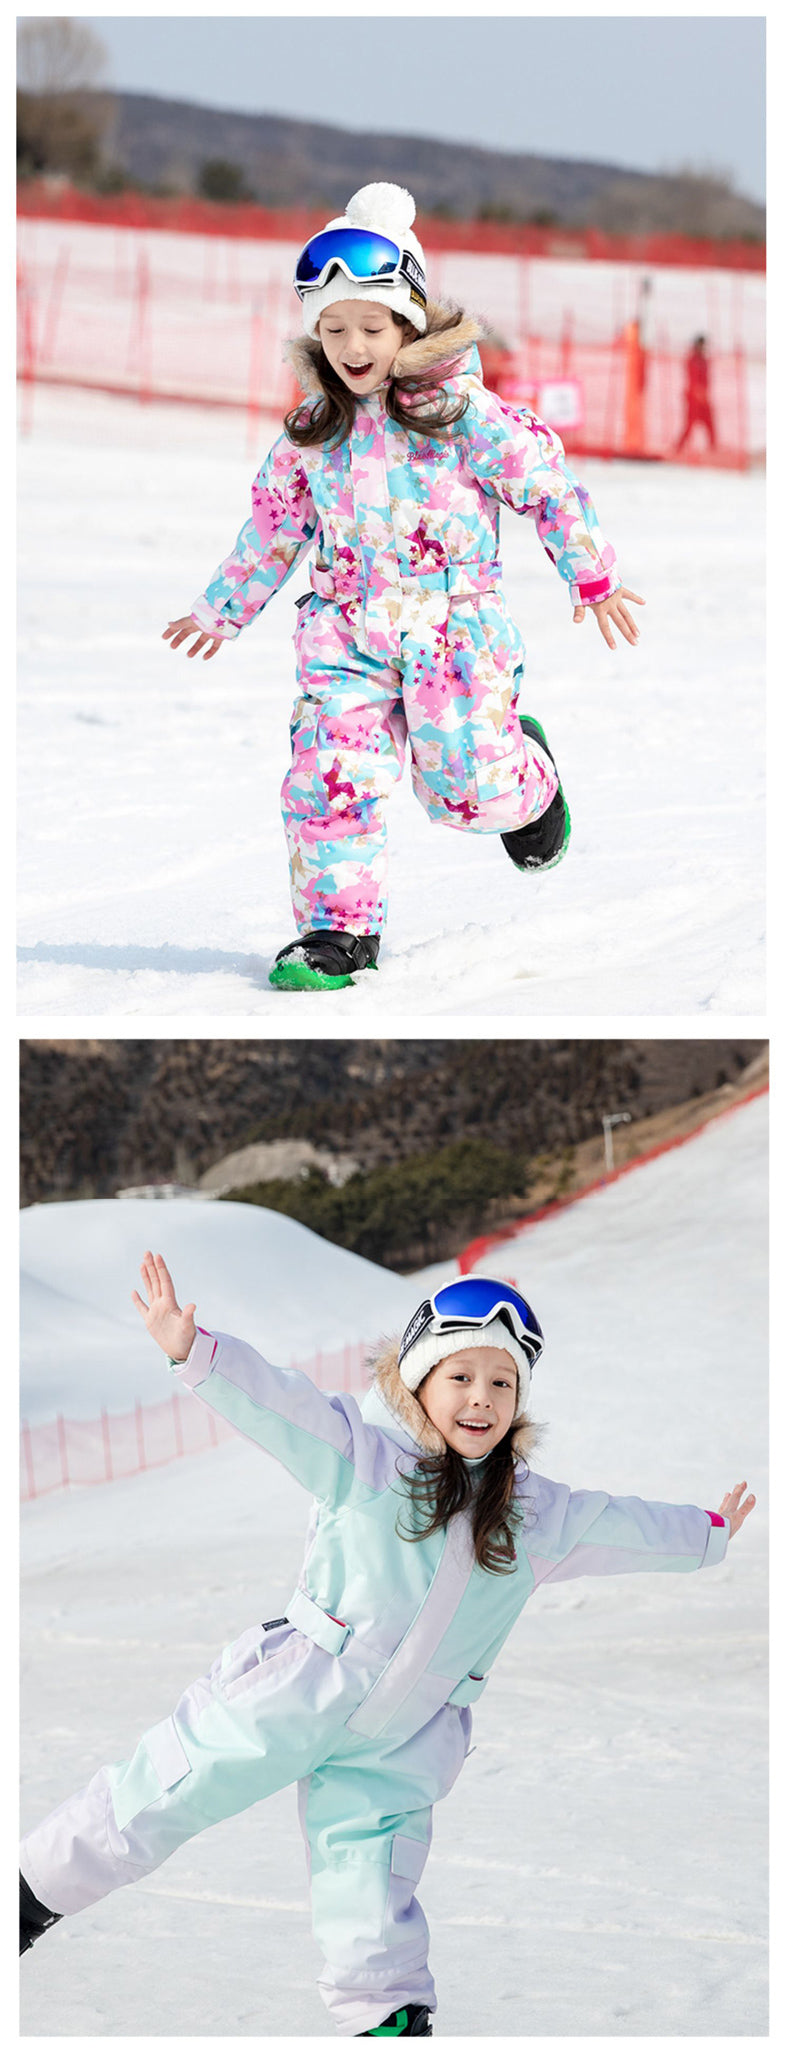 Kid's Blue Magic Winter Waterproof Colorful One Piece Ski Suits Jumpsuits Coveralls